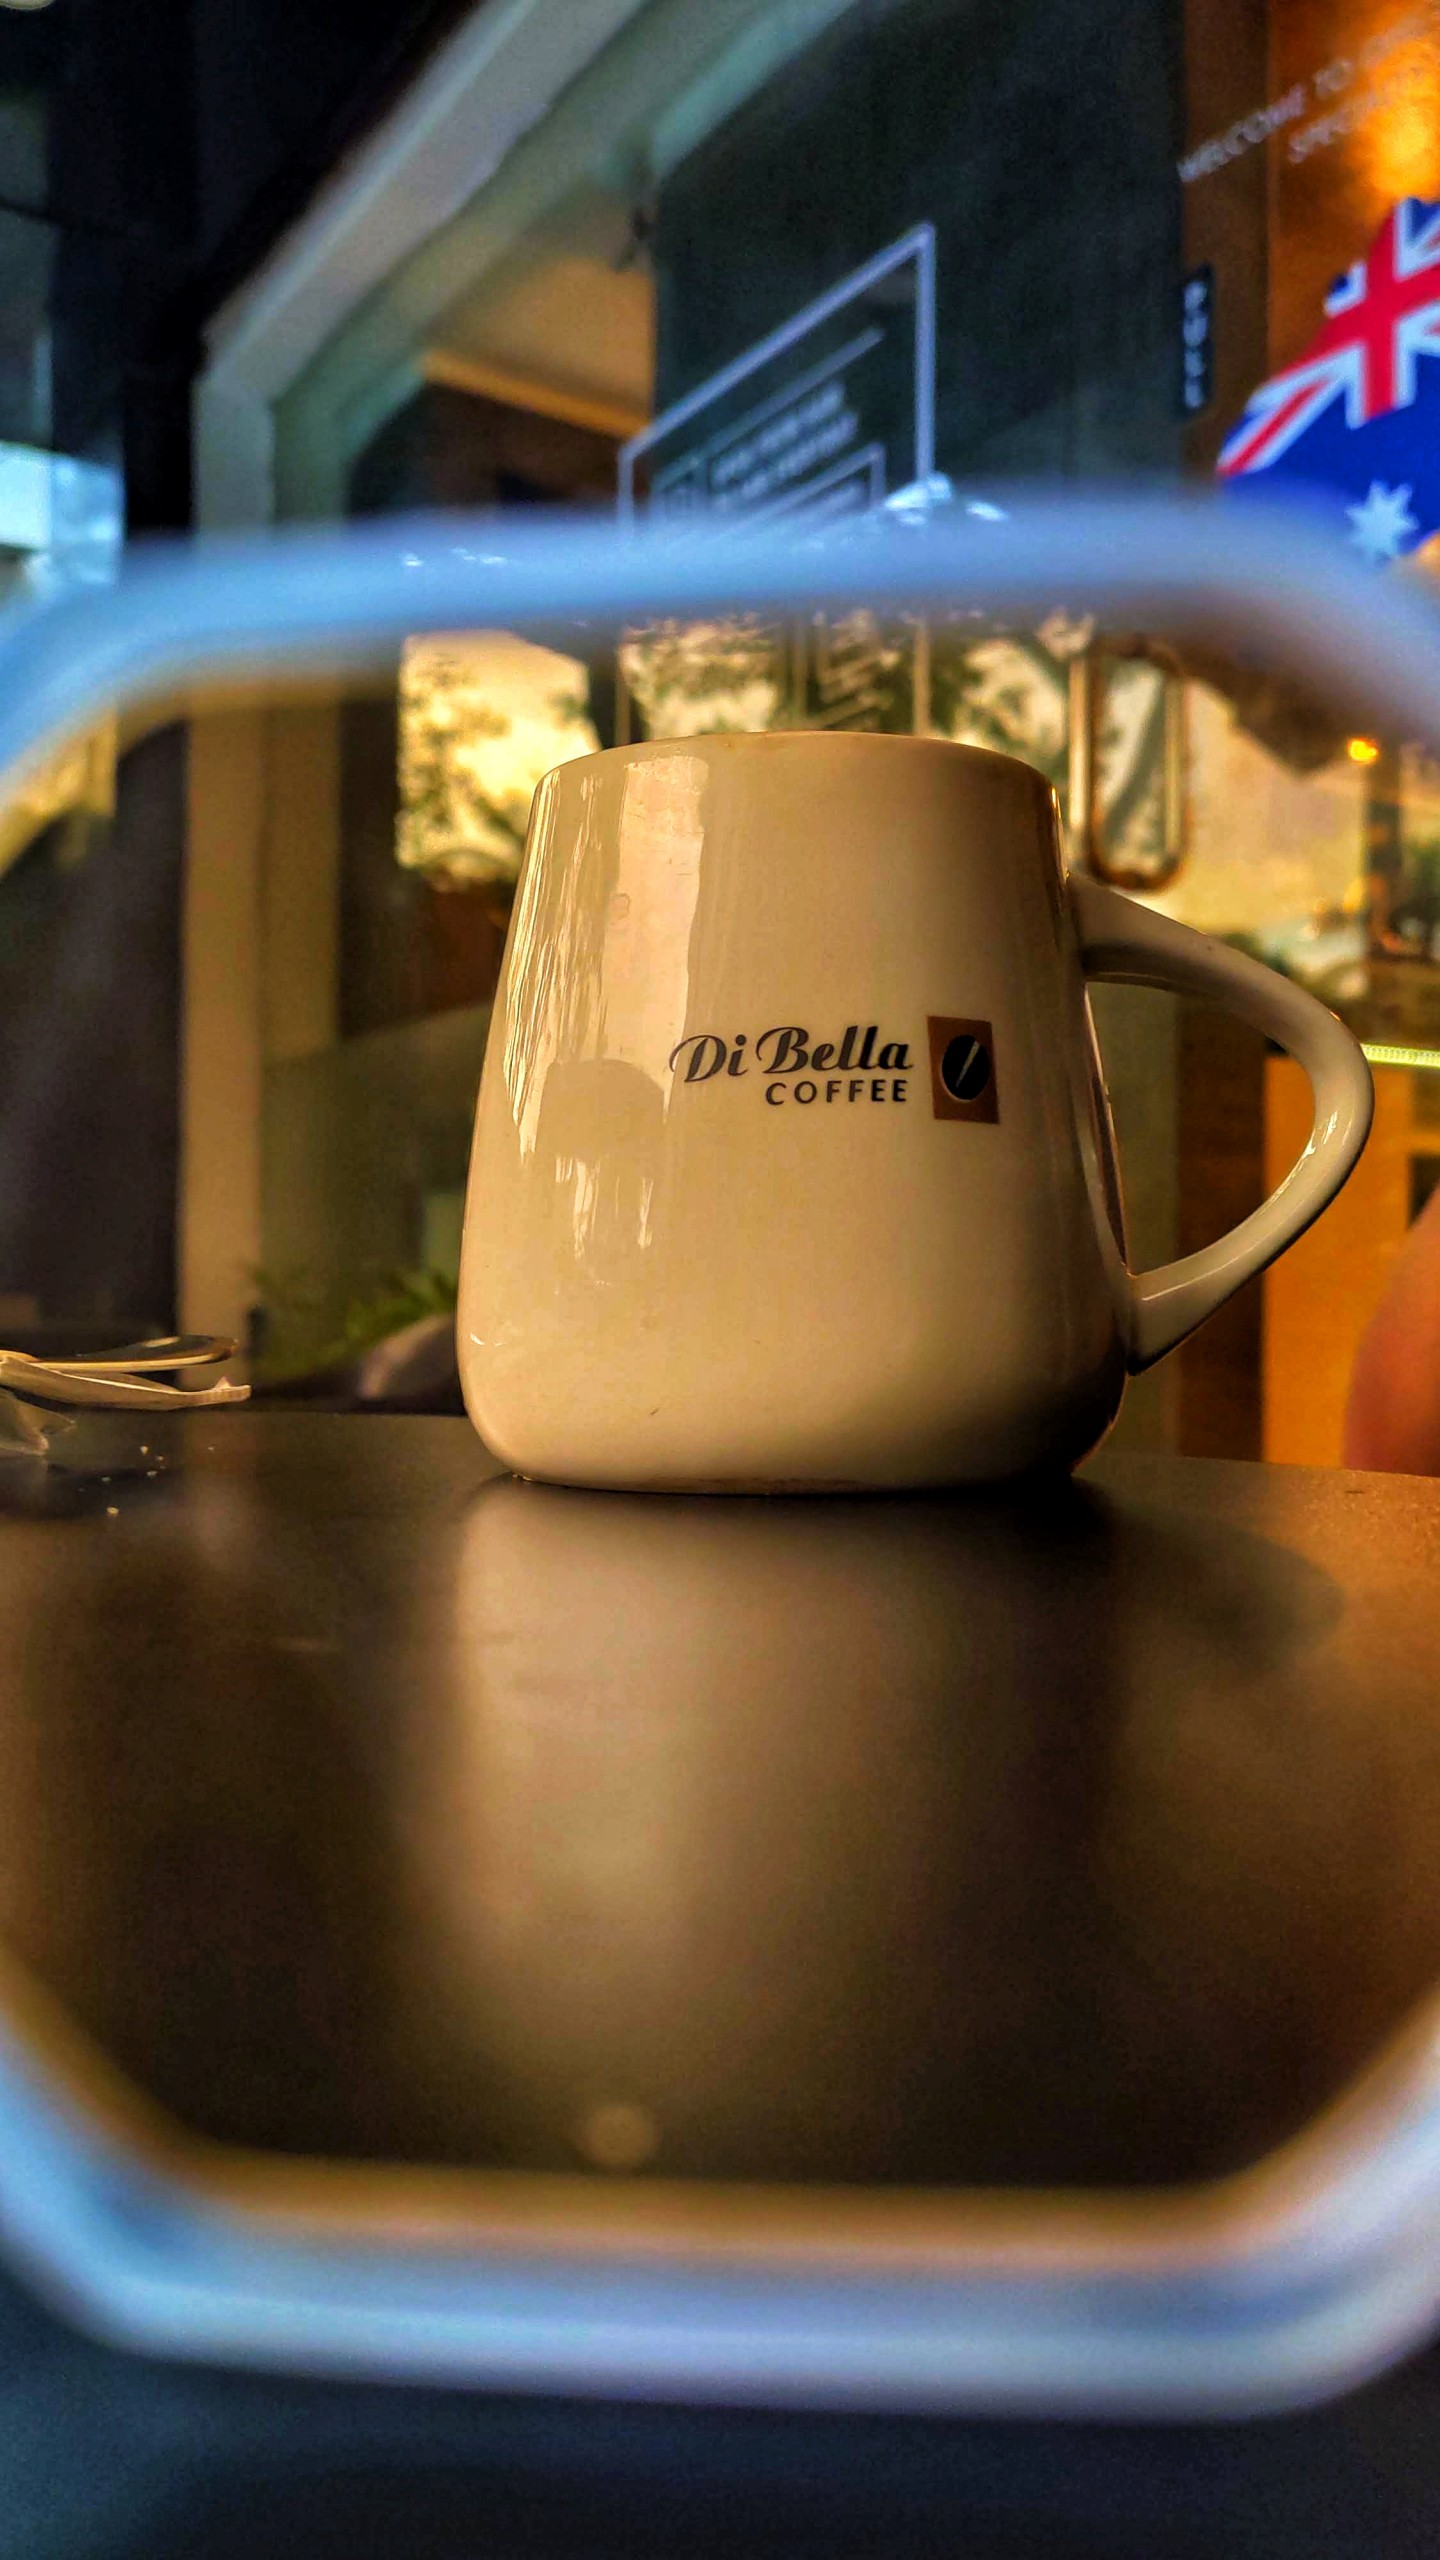 Coffee cup in filter frame